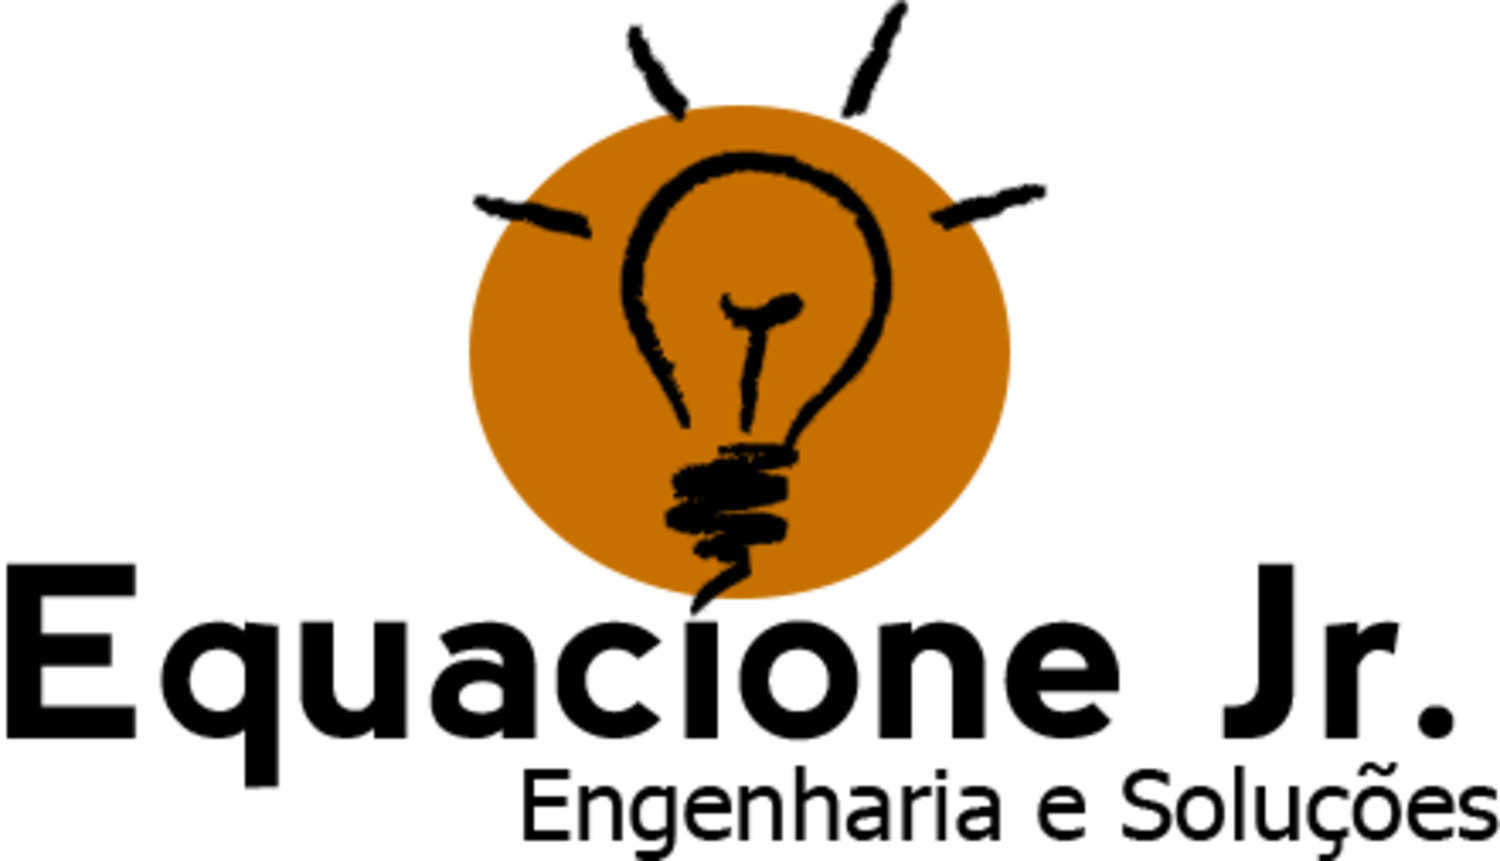 Equacione Jr.